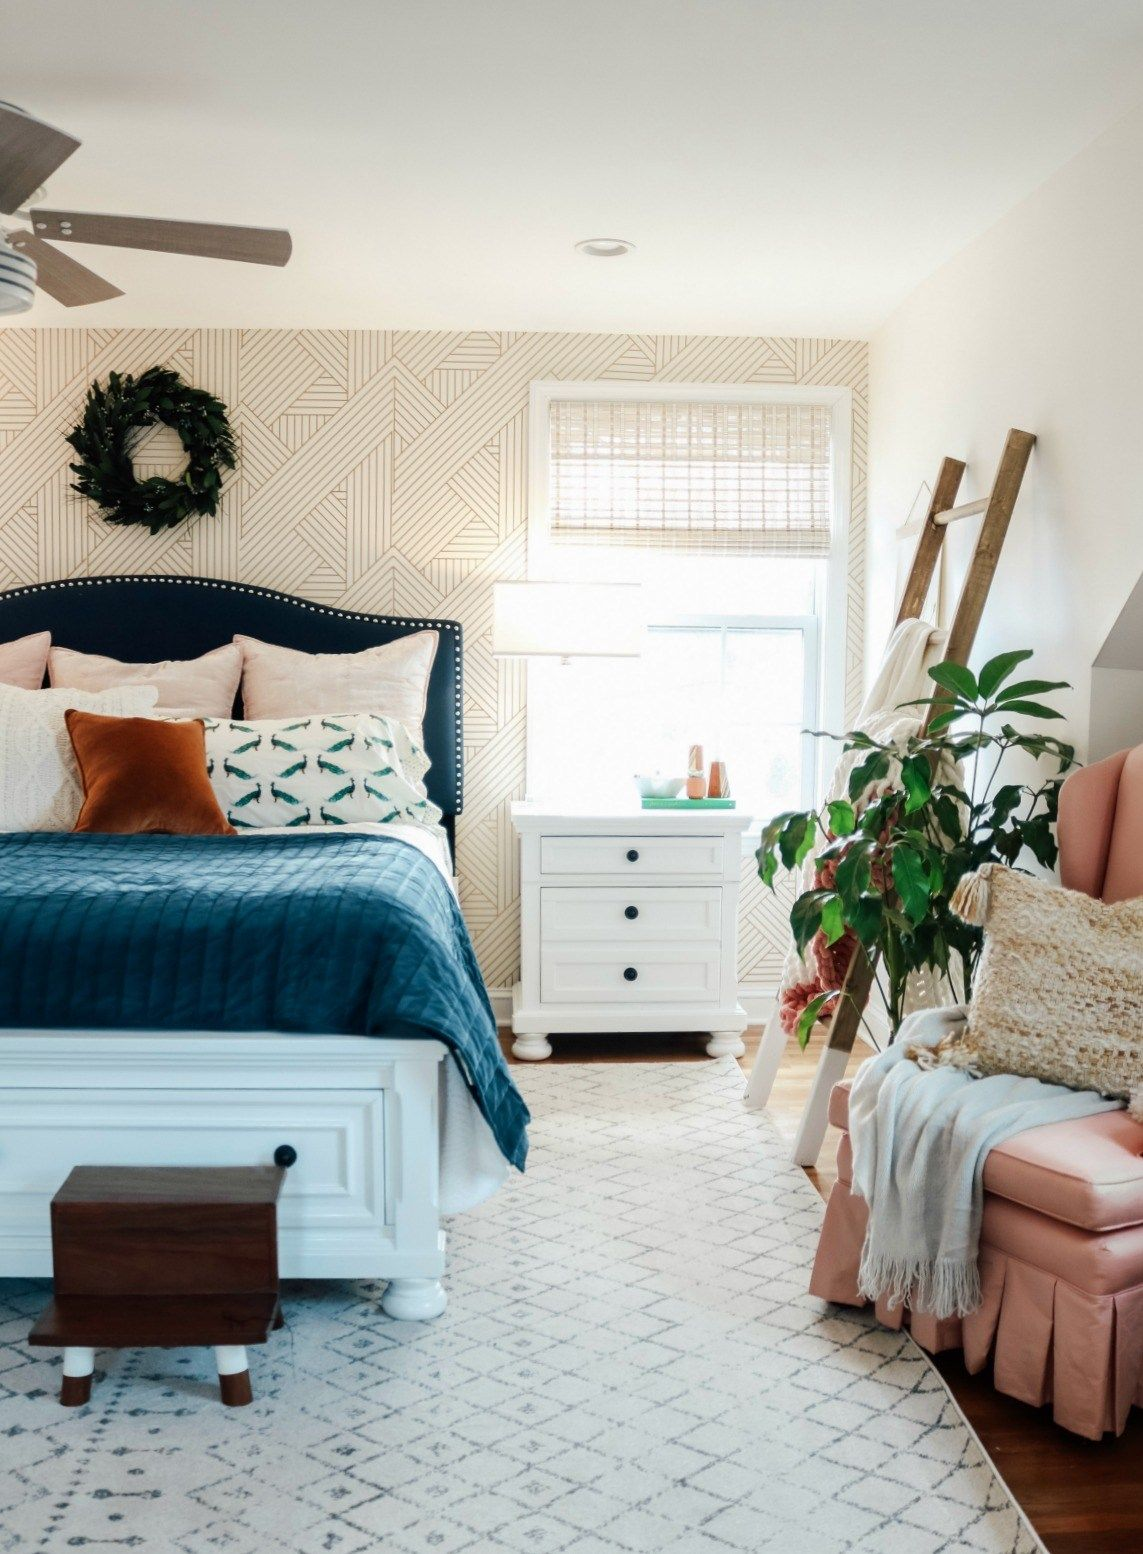 Best Bedroom Makeover Dark Furniture To Bright White With 400 x 300